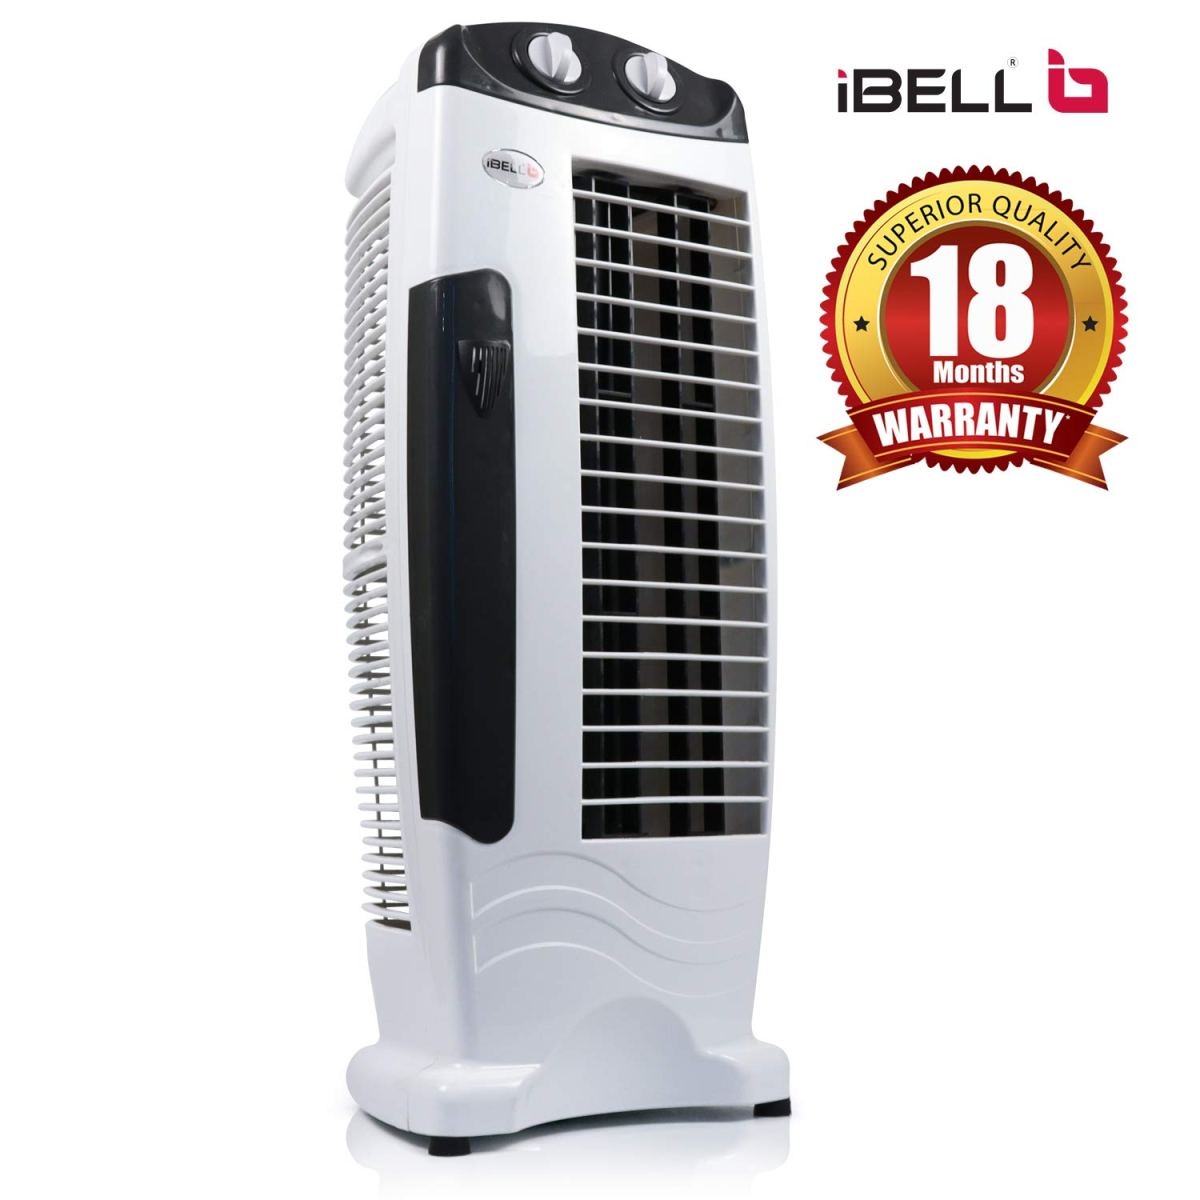 Ibell DELUXE Tower Fan with 25 Feet Air Delivery, 4-Way Air Flow, High Speed,Anti Rust Body (Black) 2020